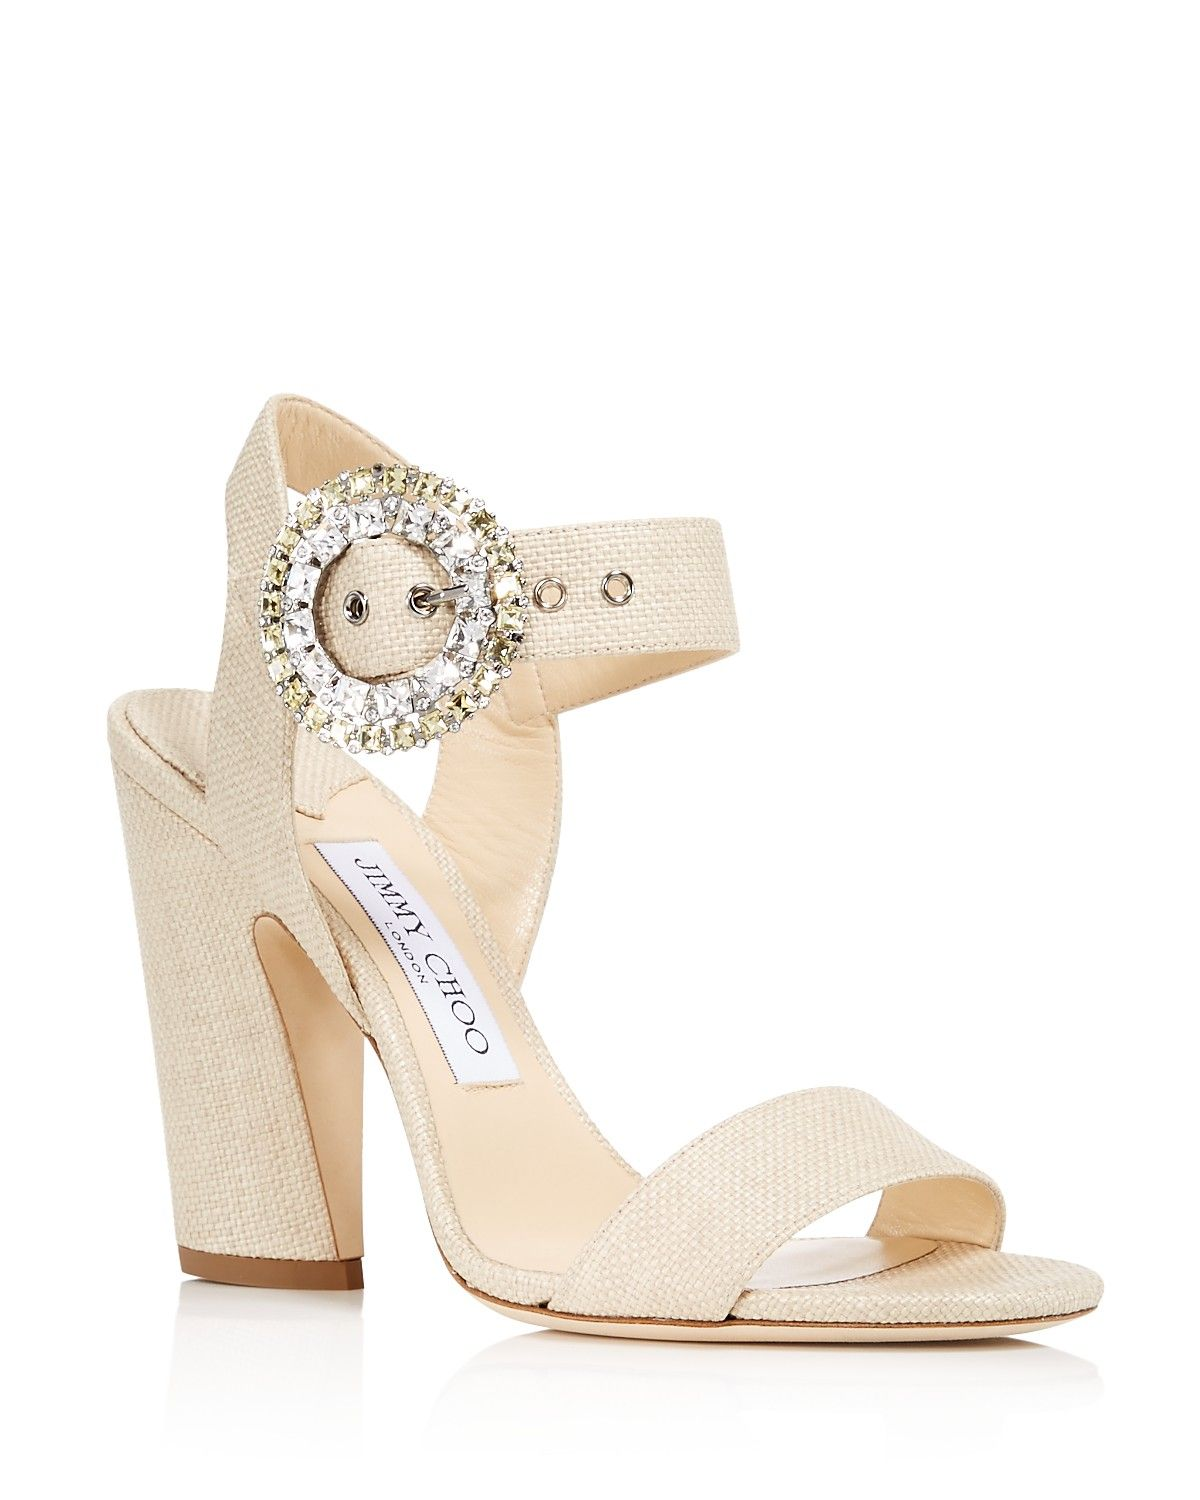 Choo jimmy wedding shoes price